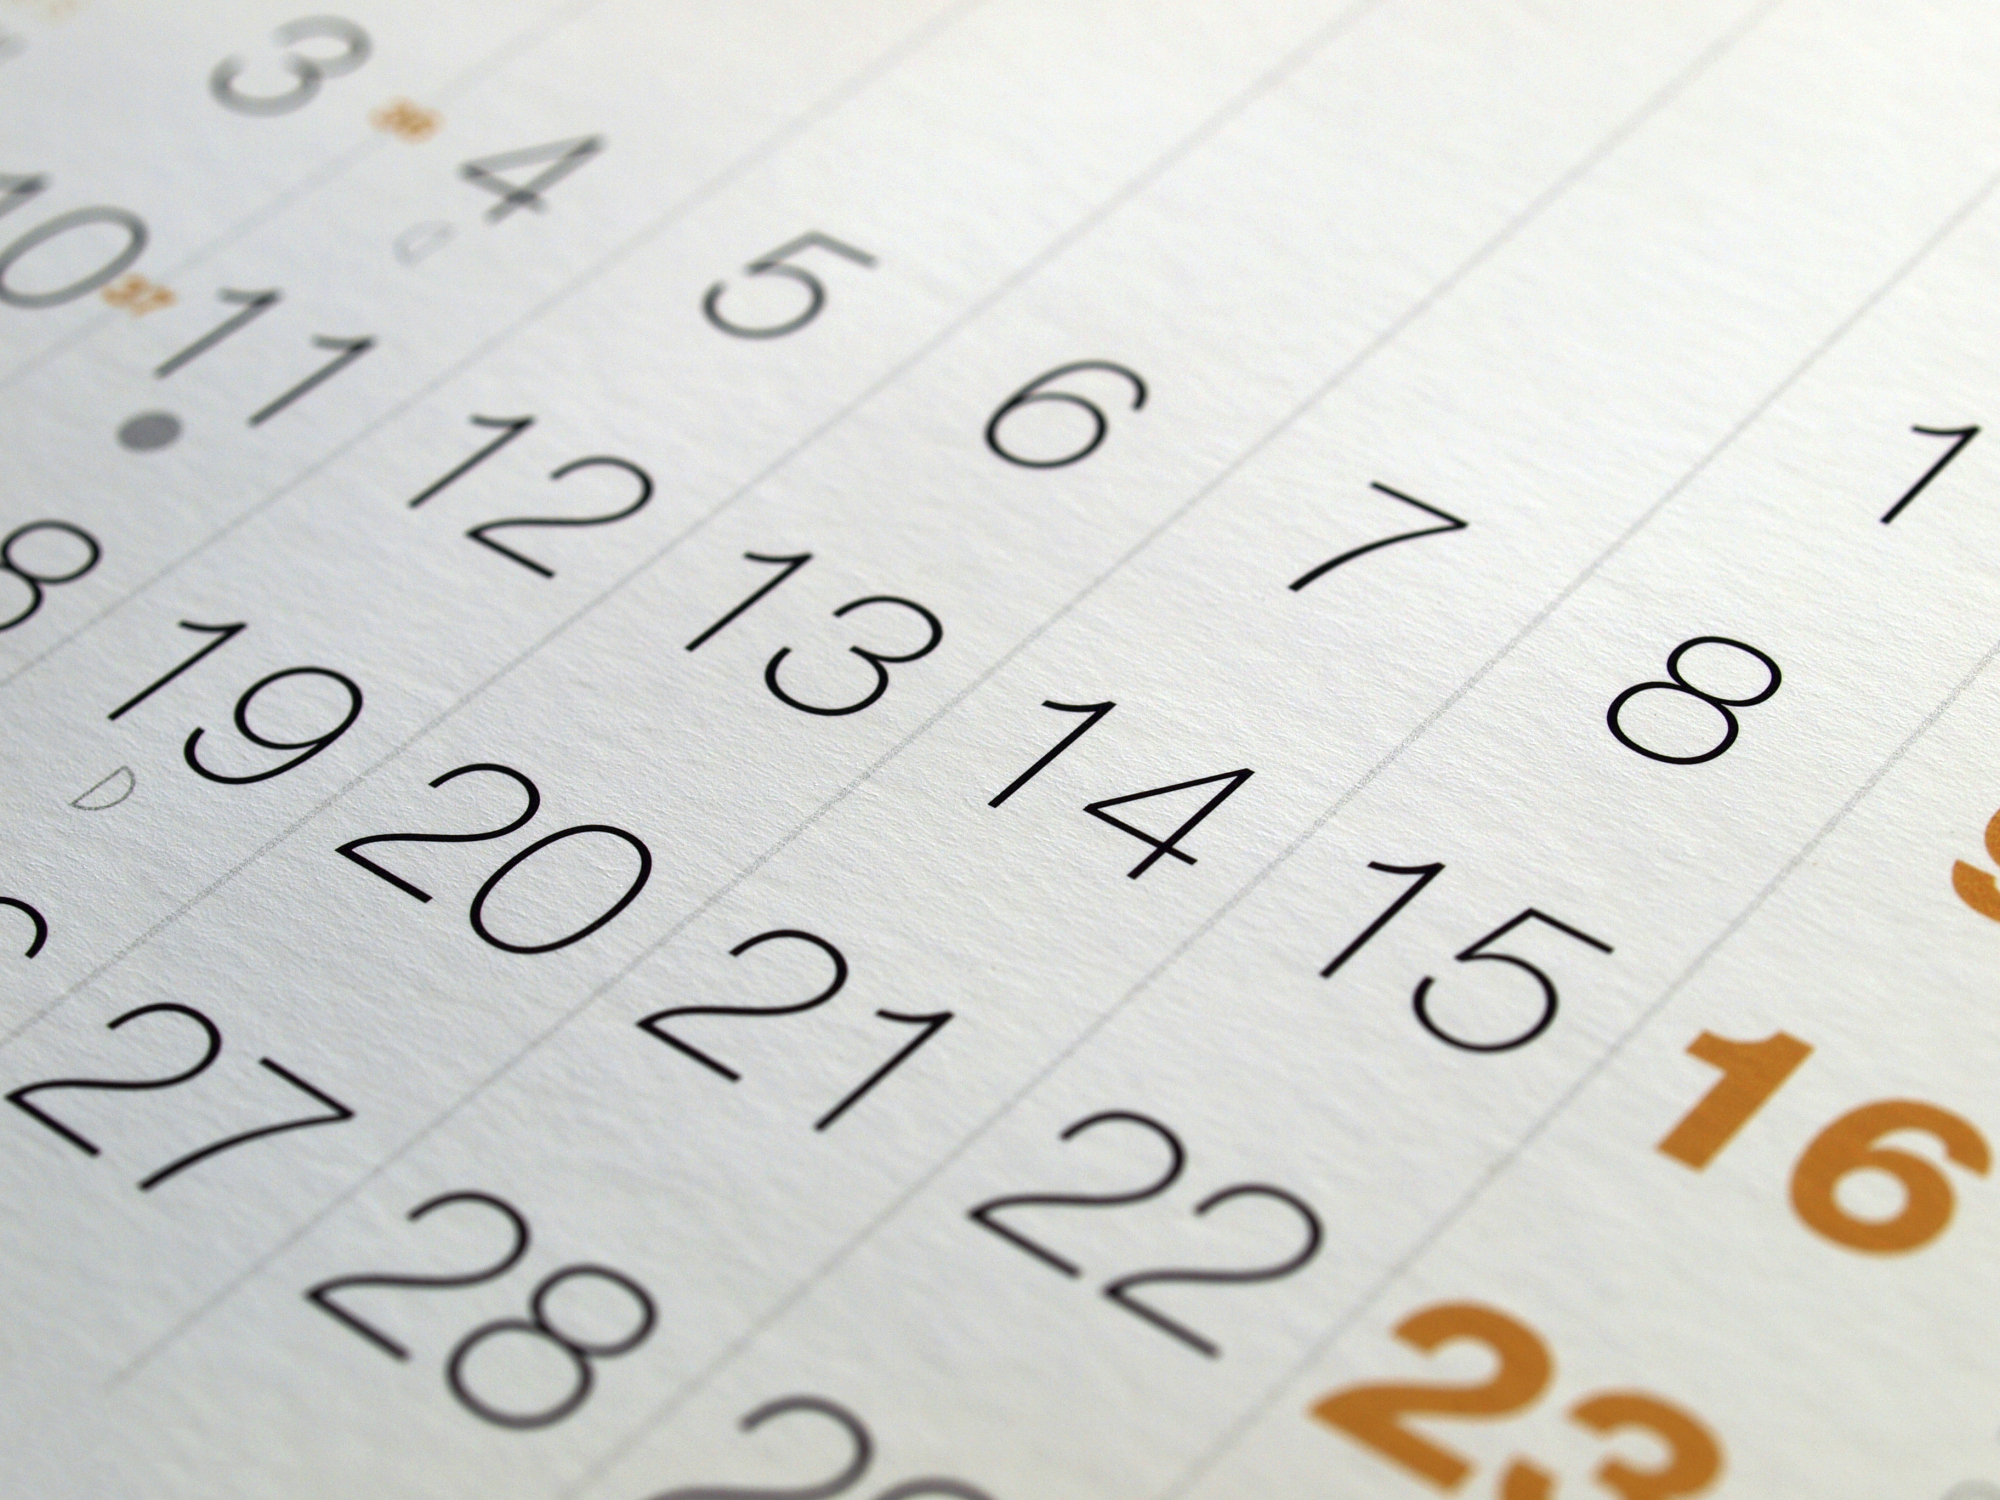 New Year, New Calendar Strategy: 10 Tips for Staying Organized in 2014